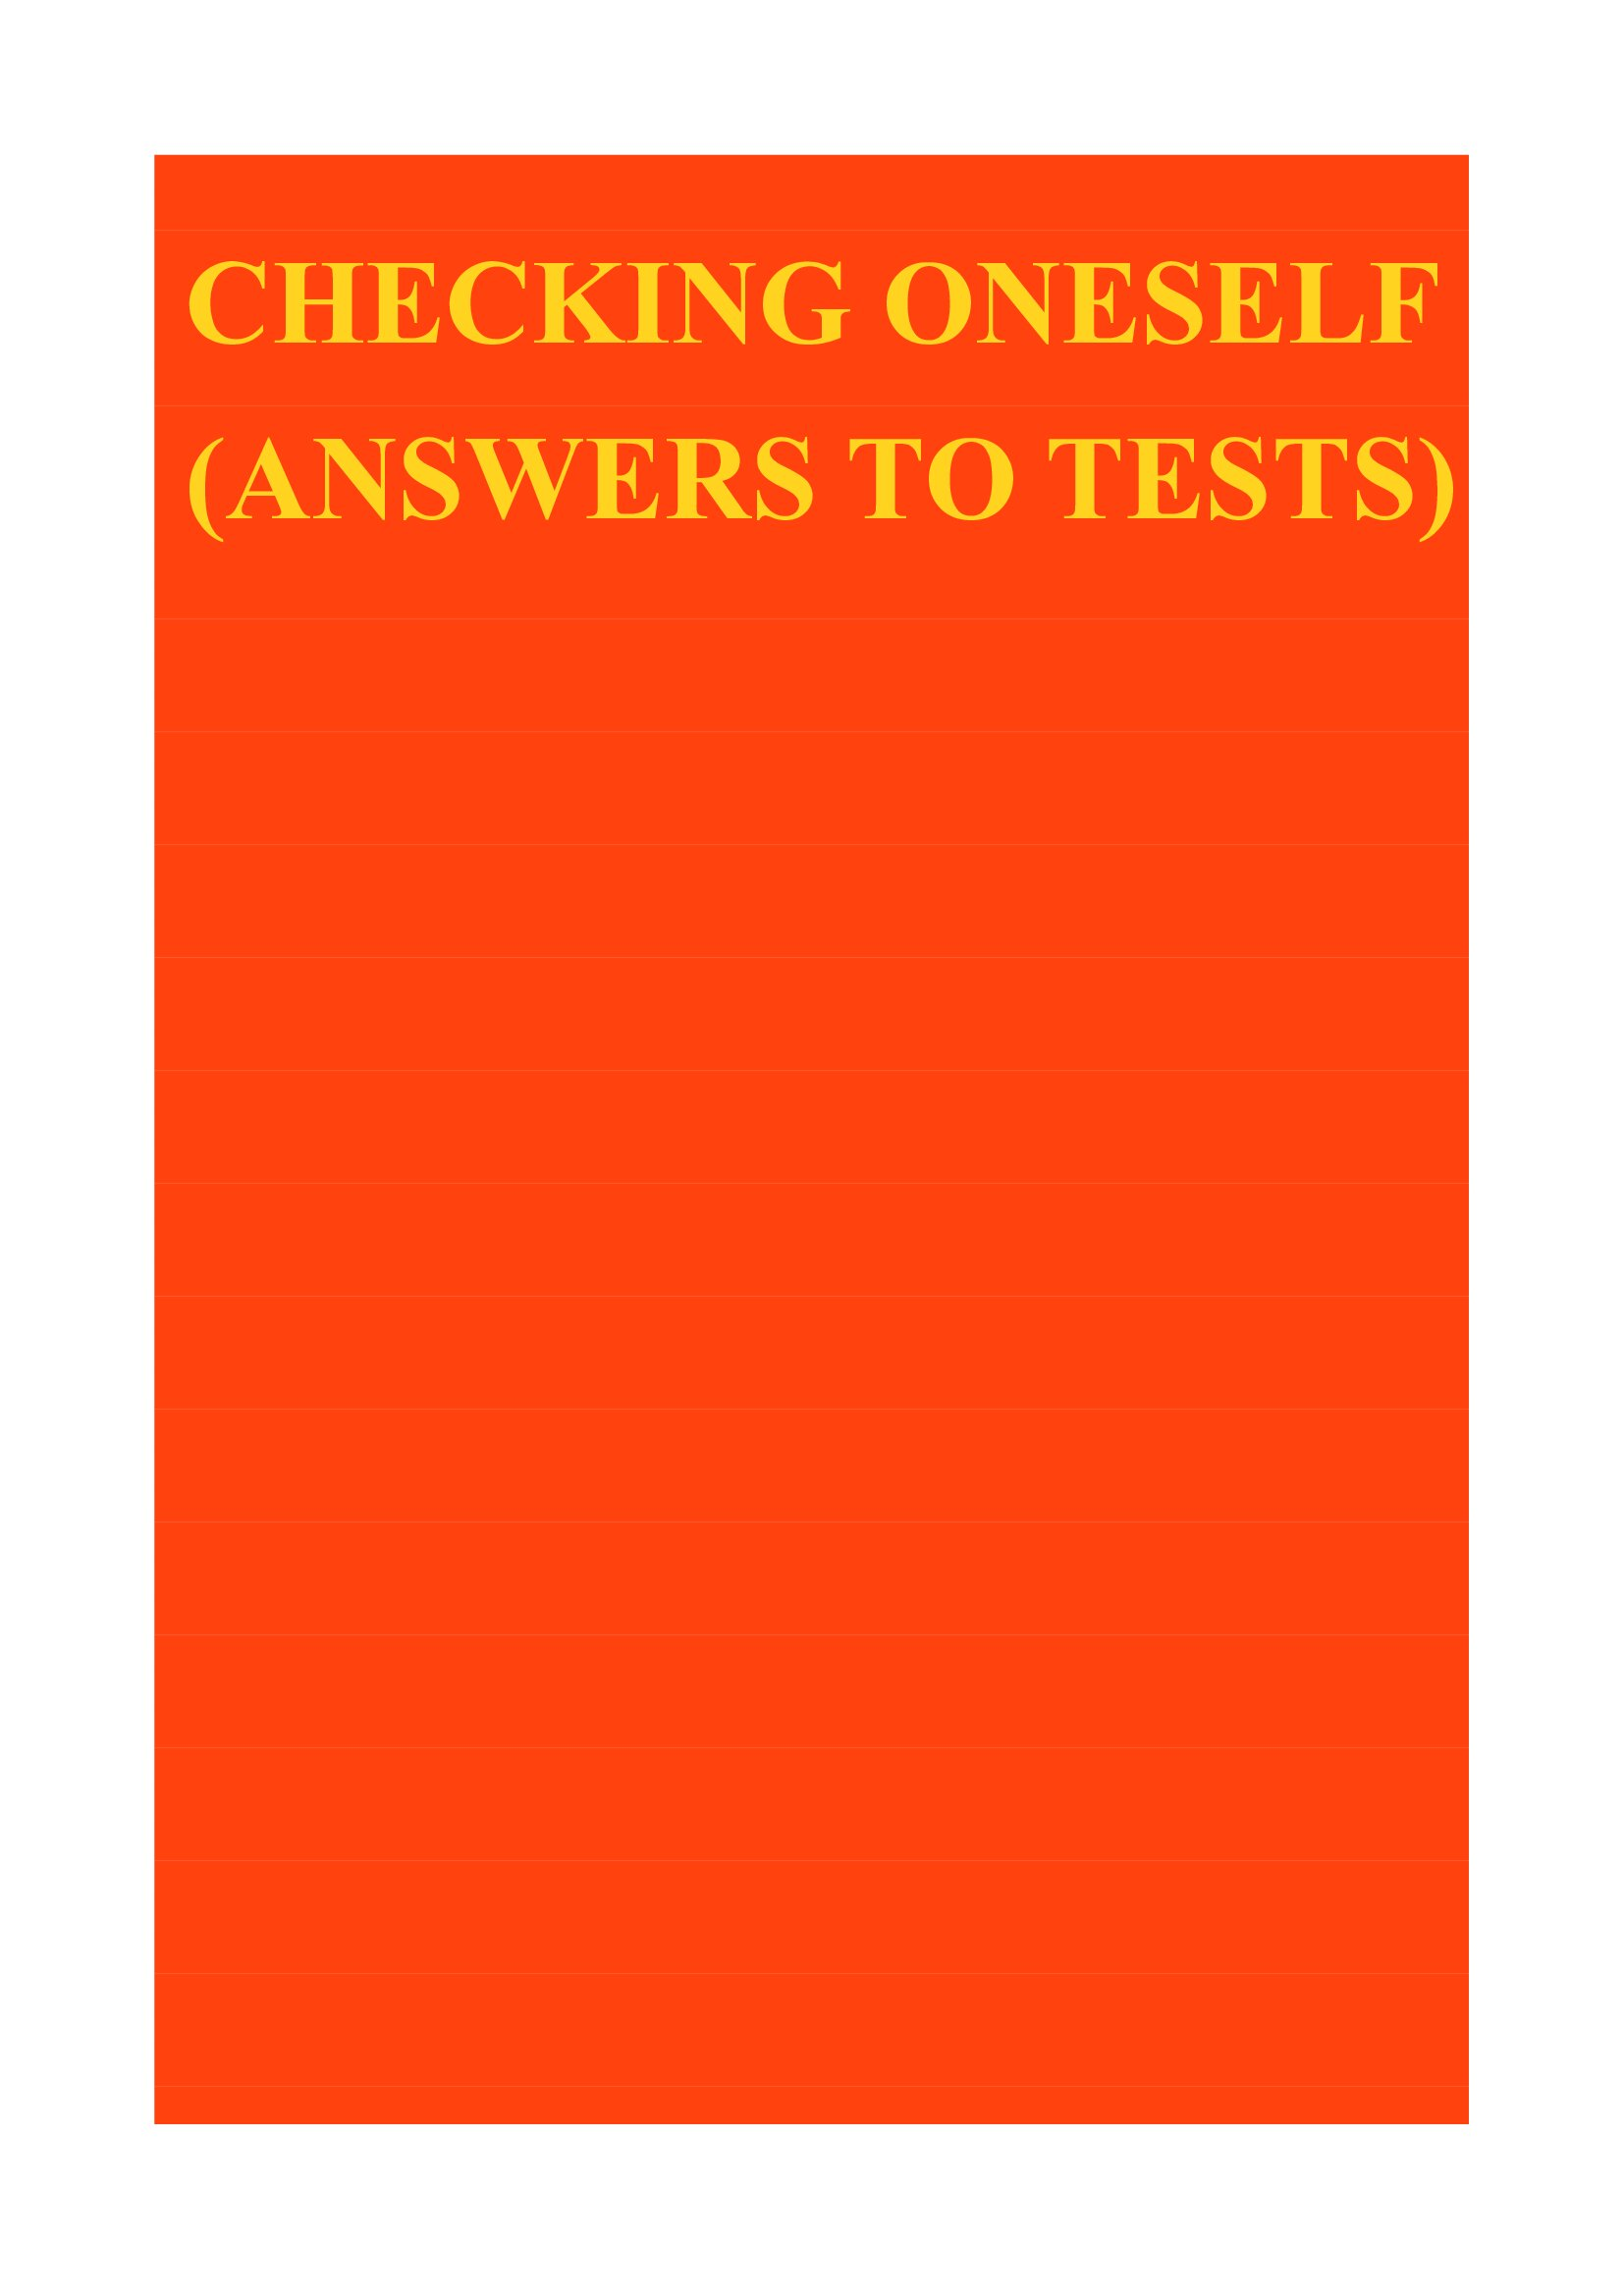 Checking oneself (answers to tests)